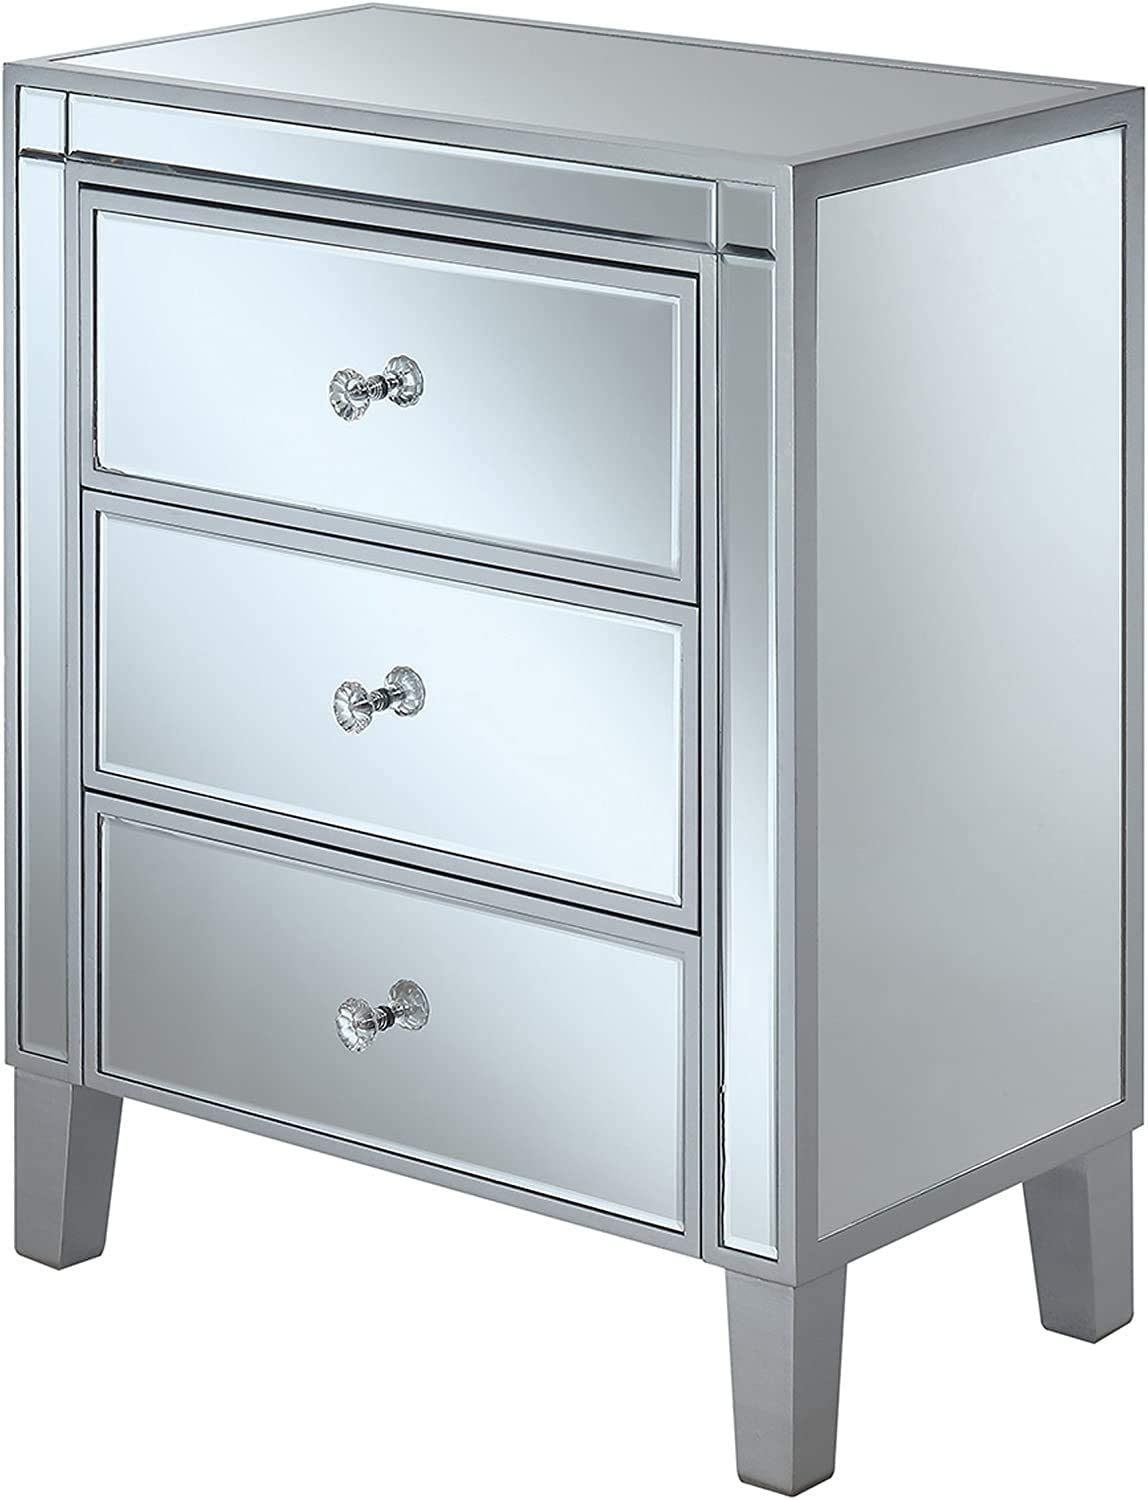 Convenience Concepts Gold Coast Large 3 Drawer Mirrored End Table, Silver / Mirror